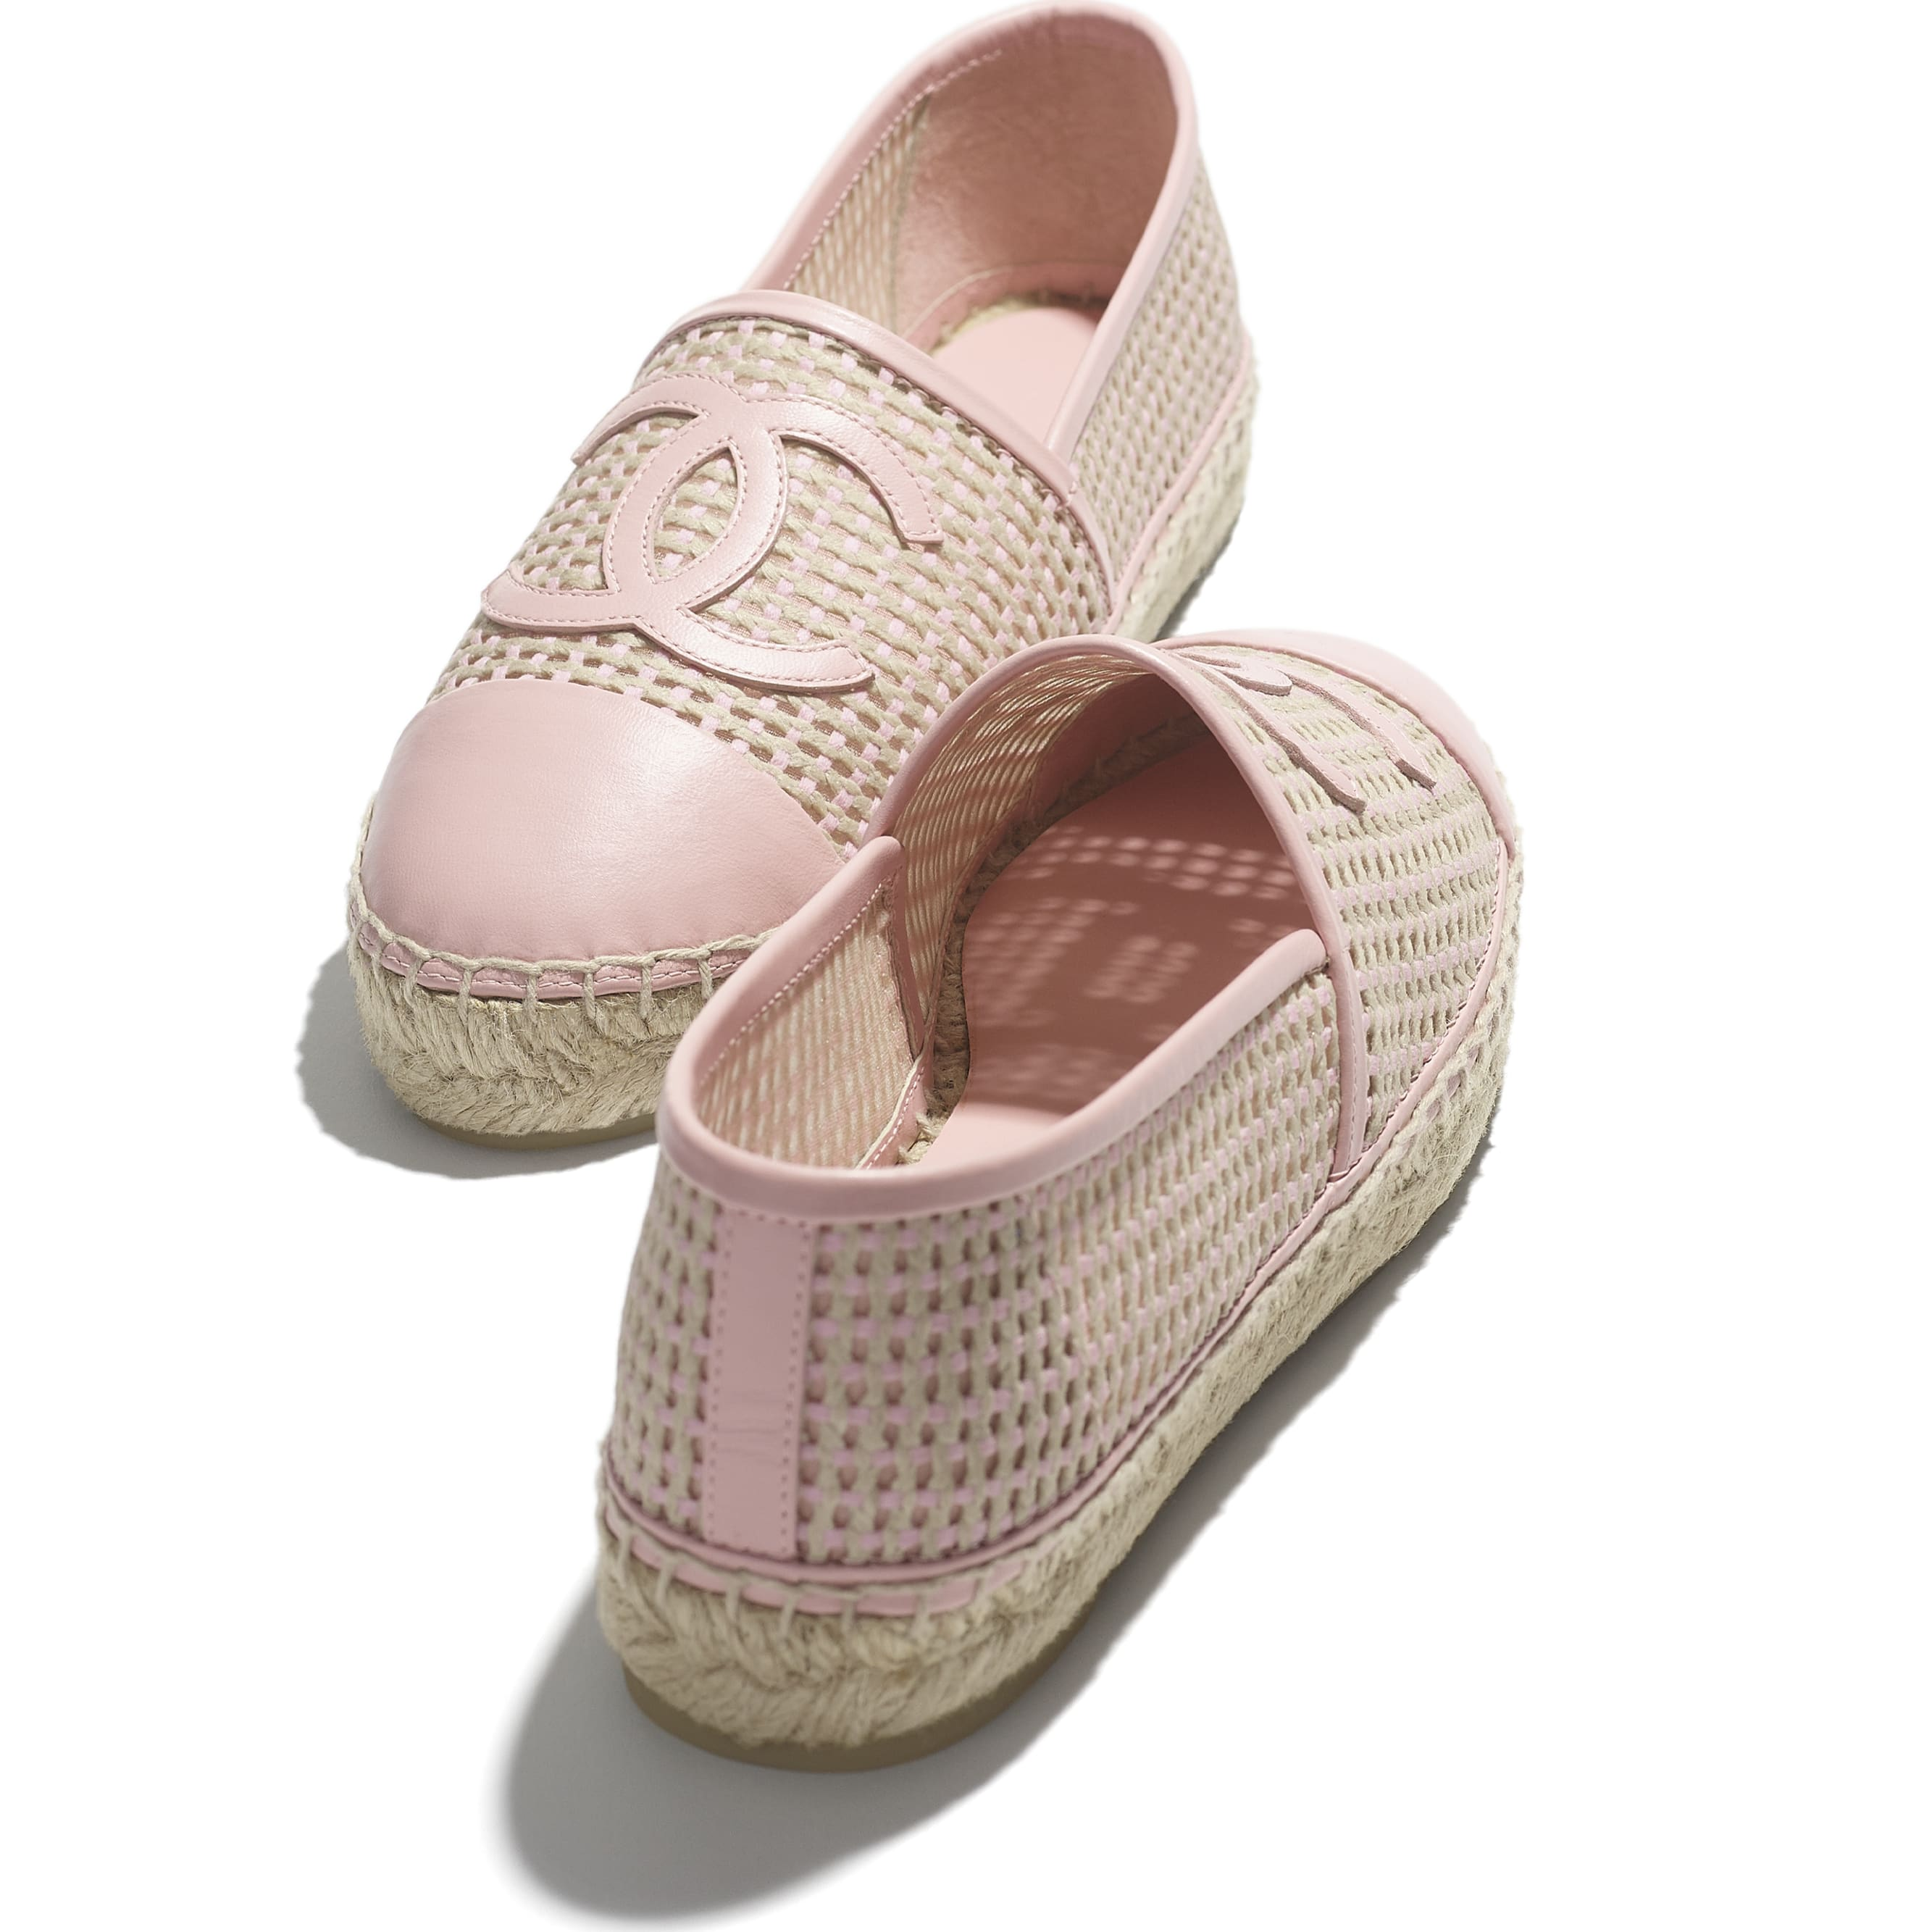 Espadrilles - Light Pink & Beige - Mesh & Lambskin - CHANEL - Extra view - see standard sized version